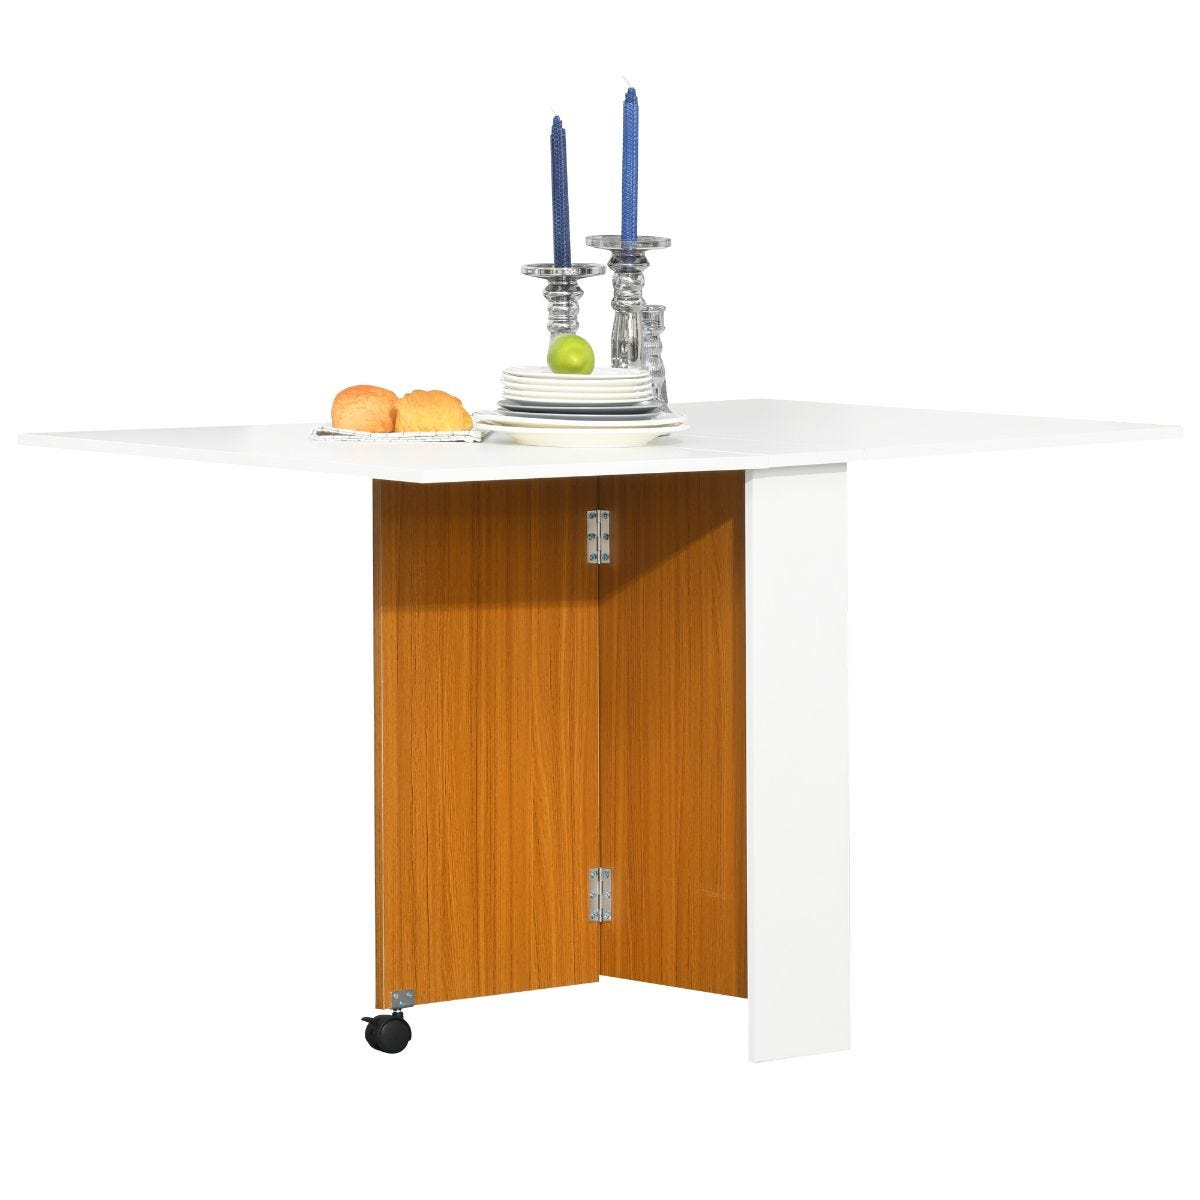 Folding 4 To 6 Seater Dining Table Mobile Desk With Castors Teak Colour White